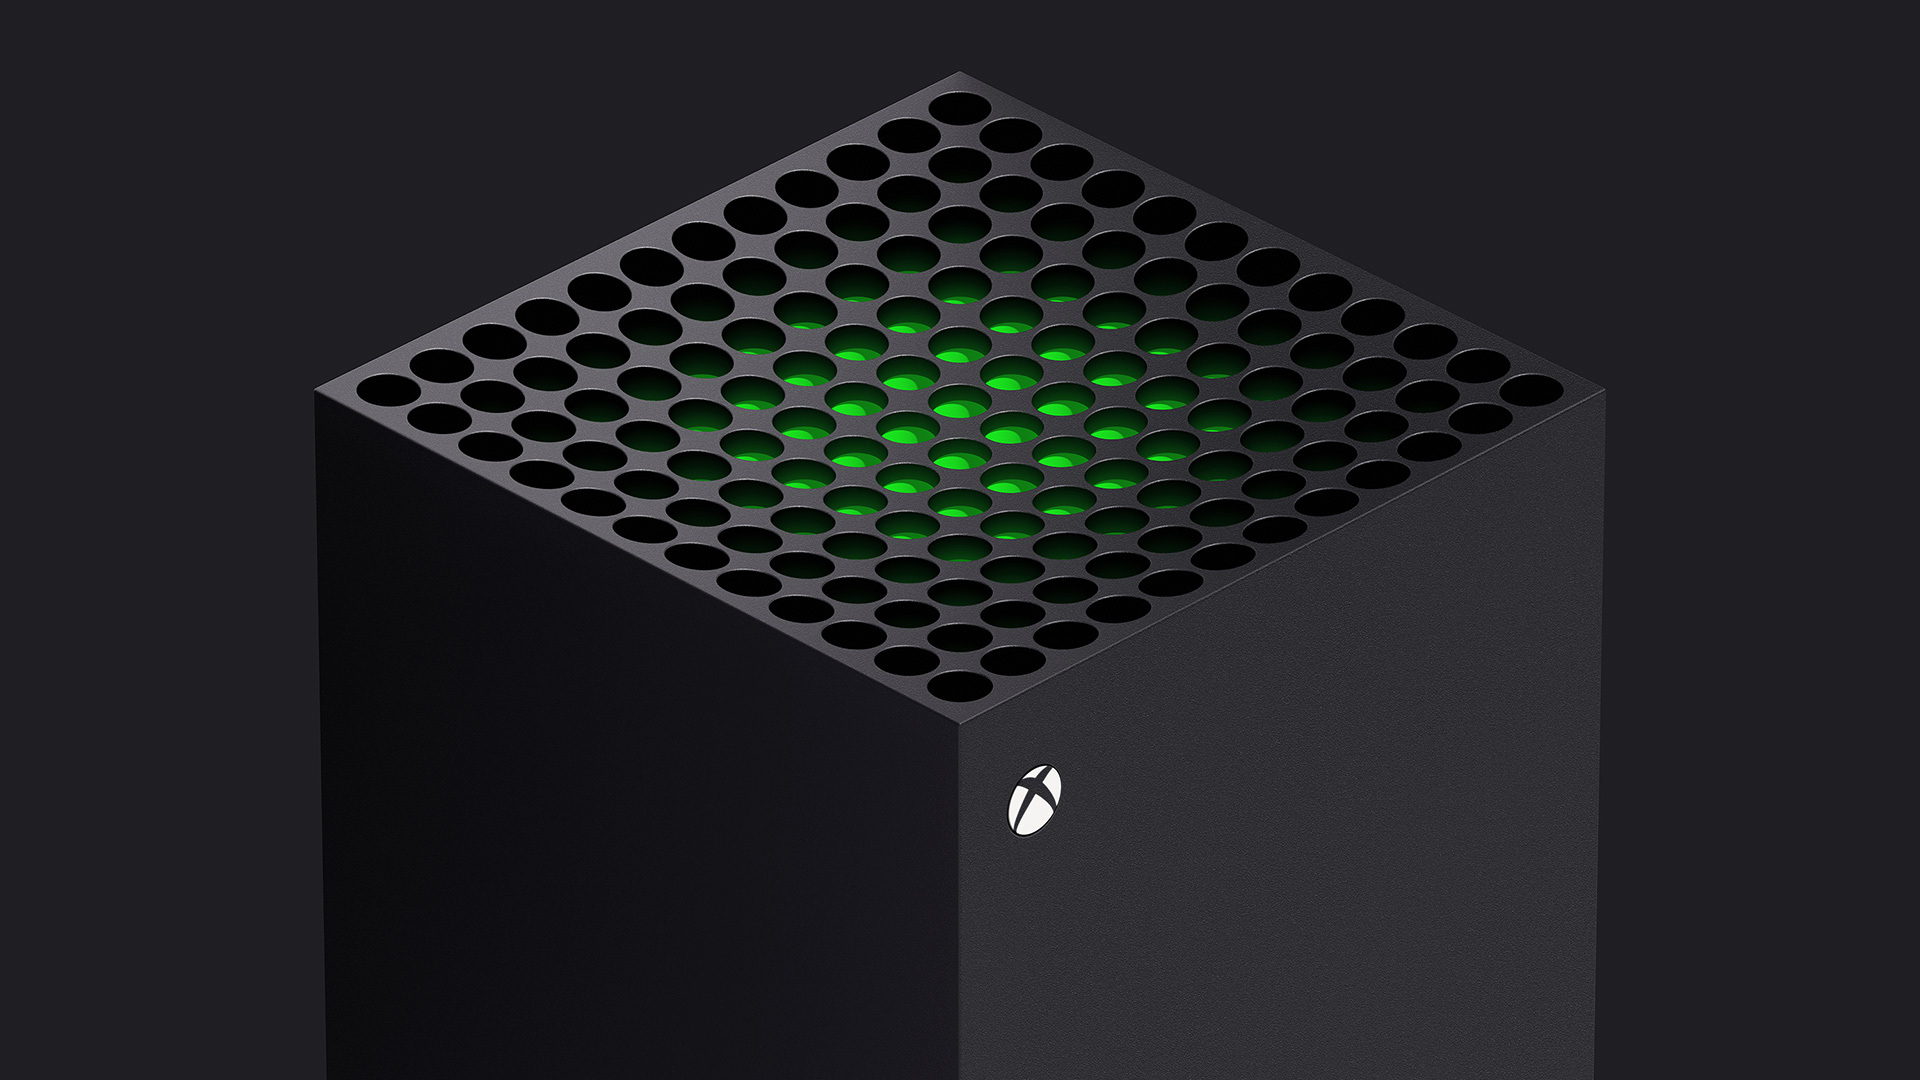 the-latest-amd-tech-is-coming-to-your-xbox-series-x-in-a-blow-for-the-ps5